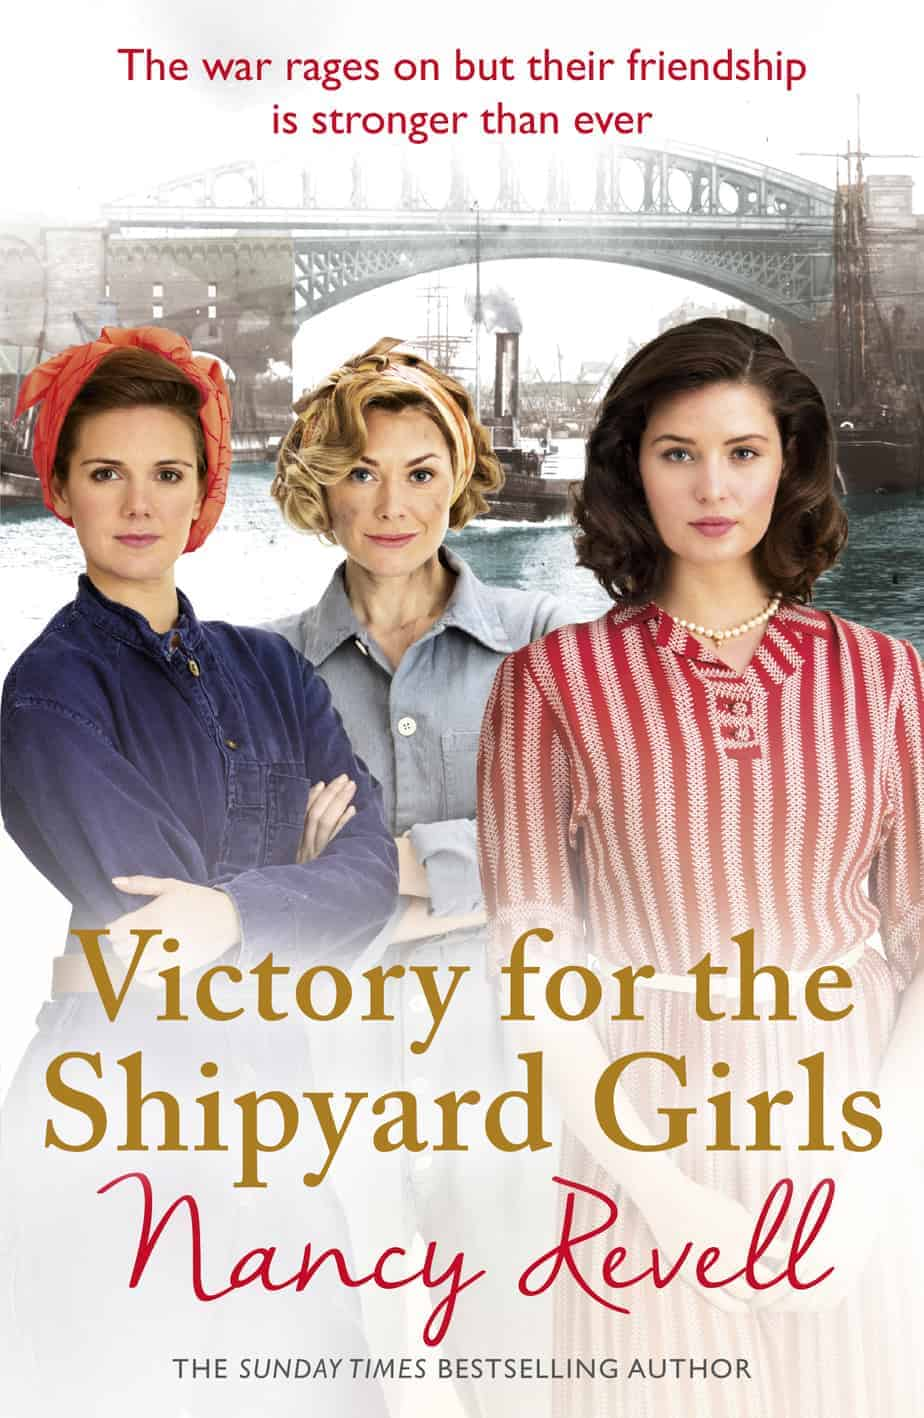 Victory for the Shipyard Girls Nancy Revell